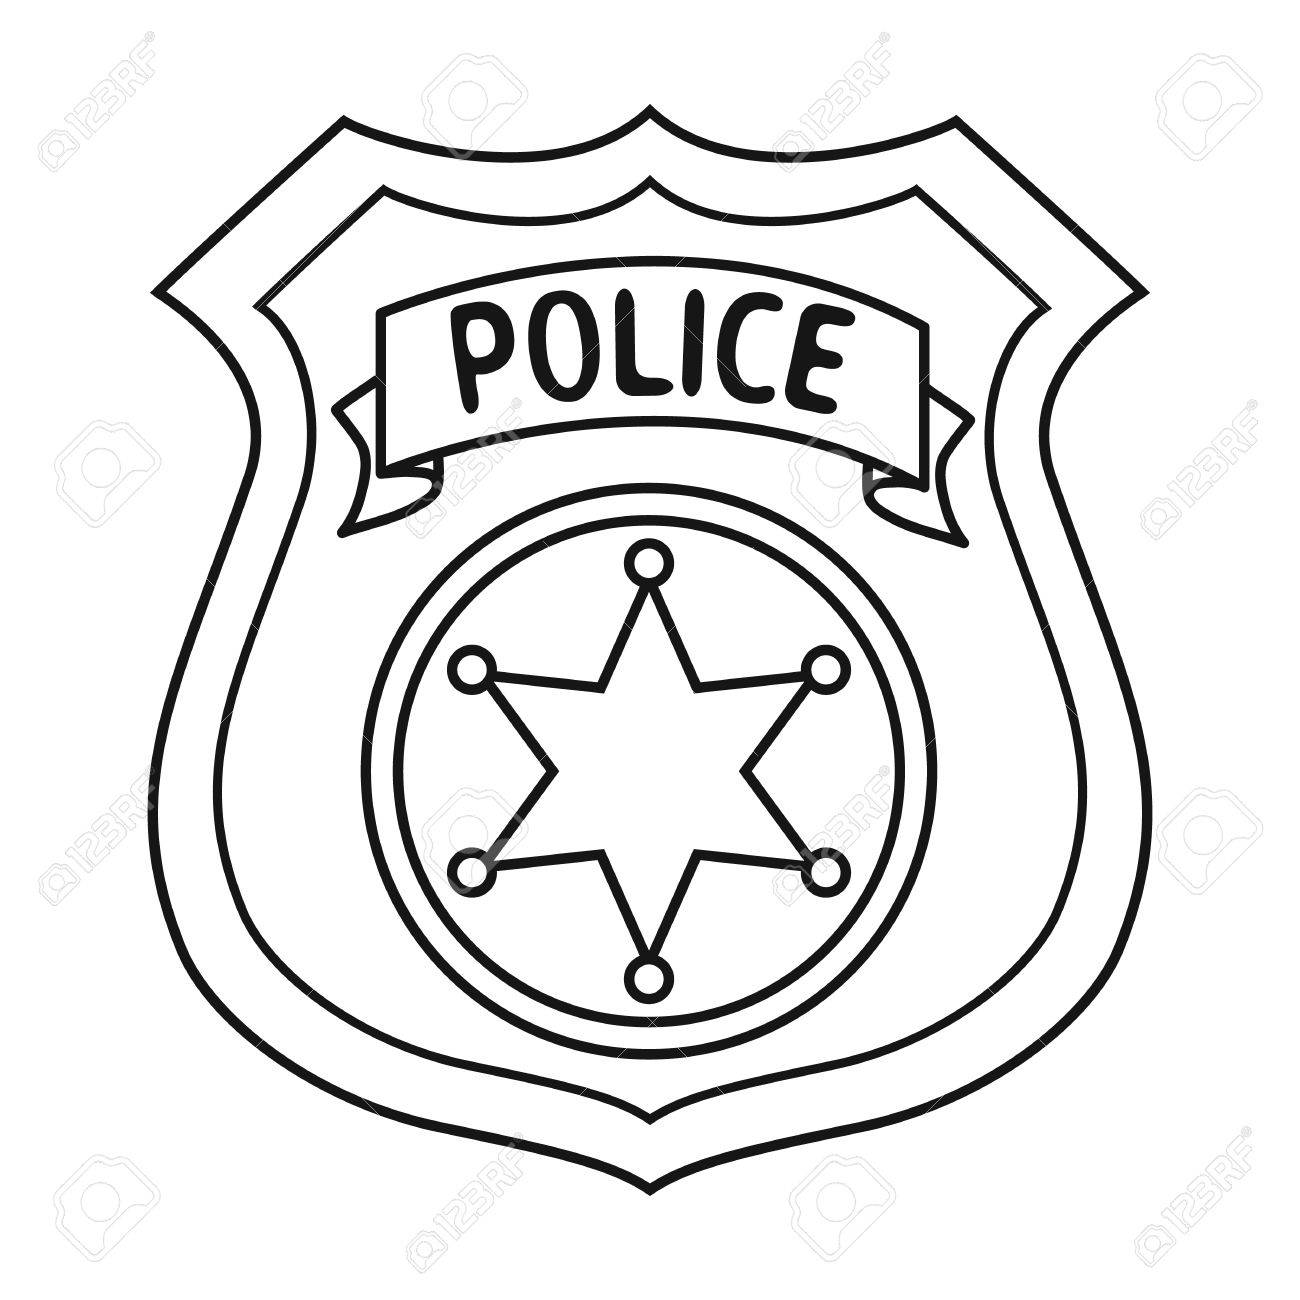 Police badge easy. Sheriff clipart free download